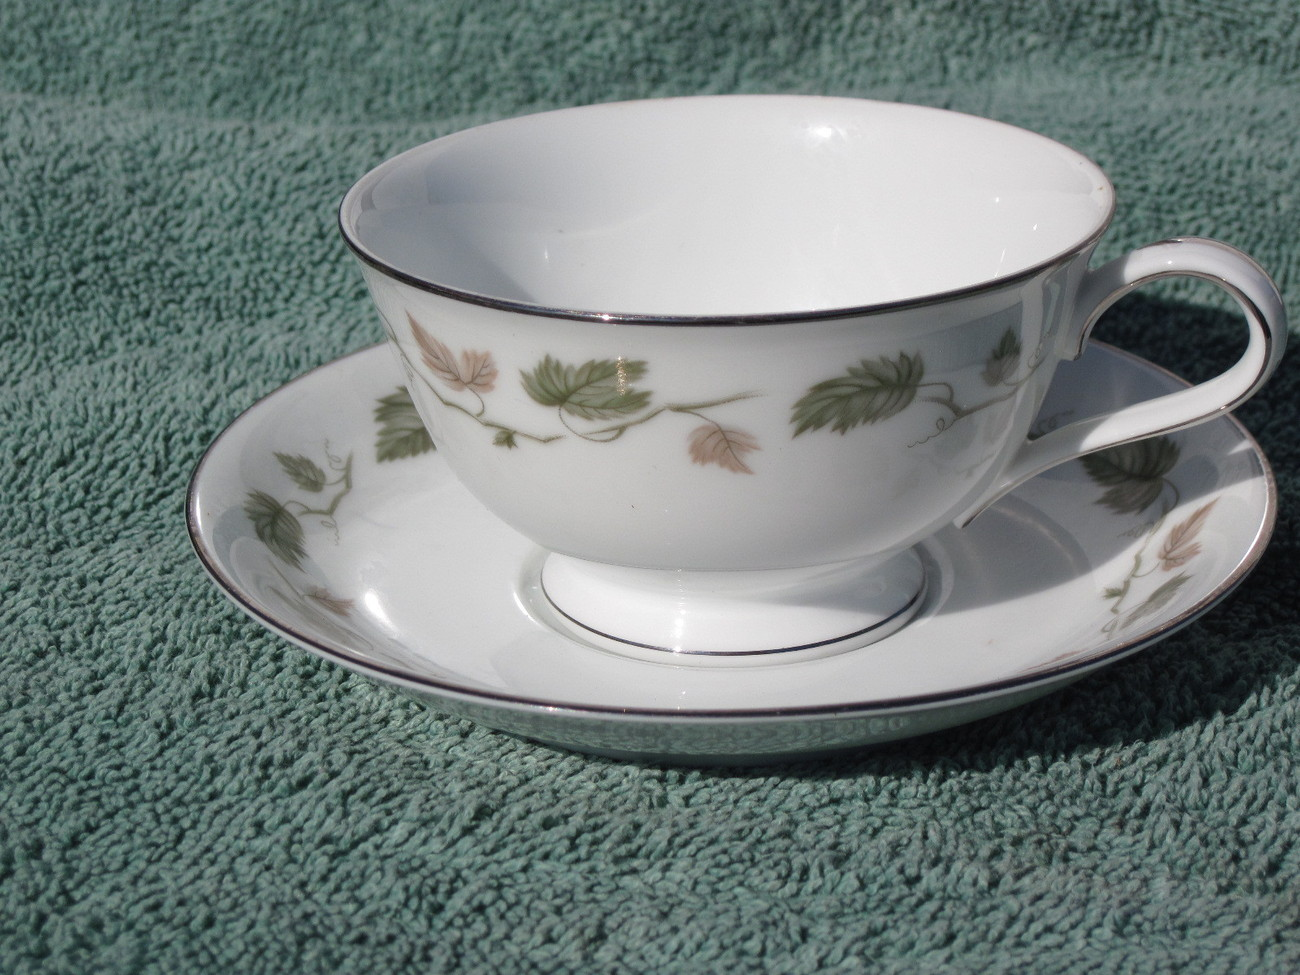 Noritake Vineyard 6449 LOT Cup & Saucer SET 6449 MORE avail this pattern